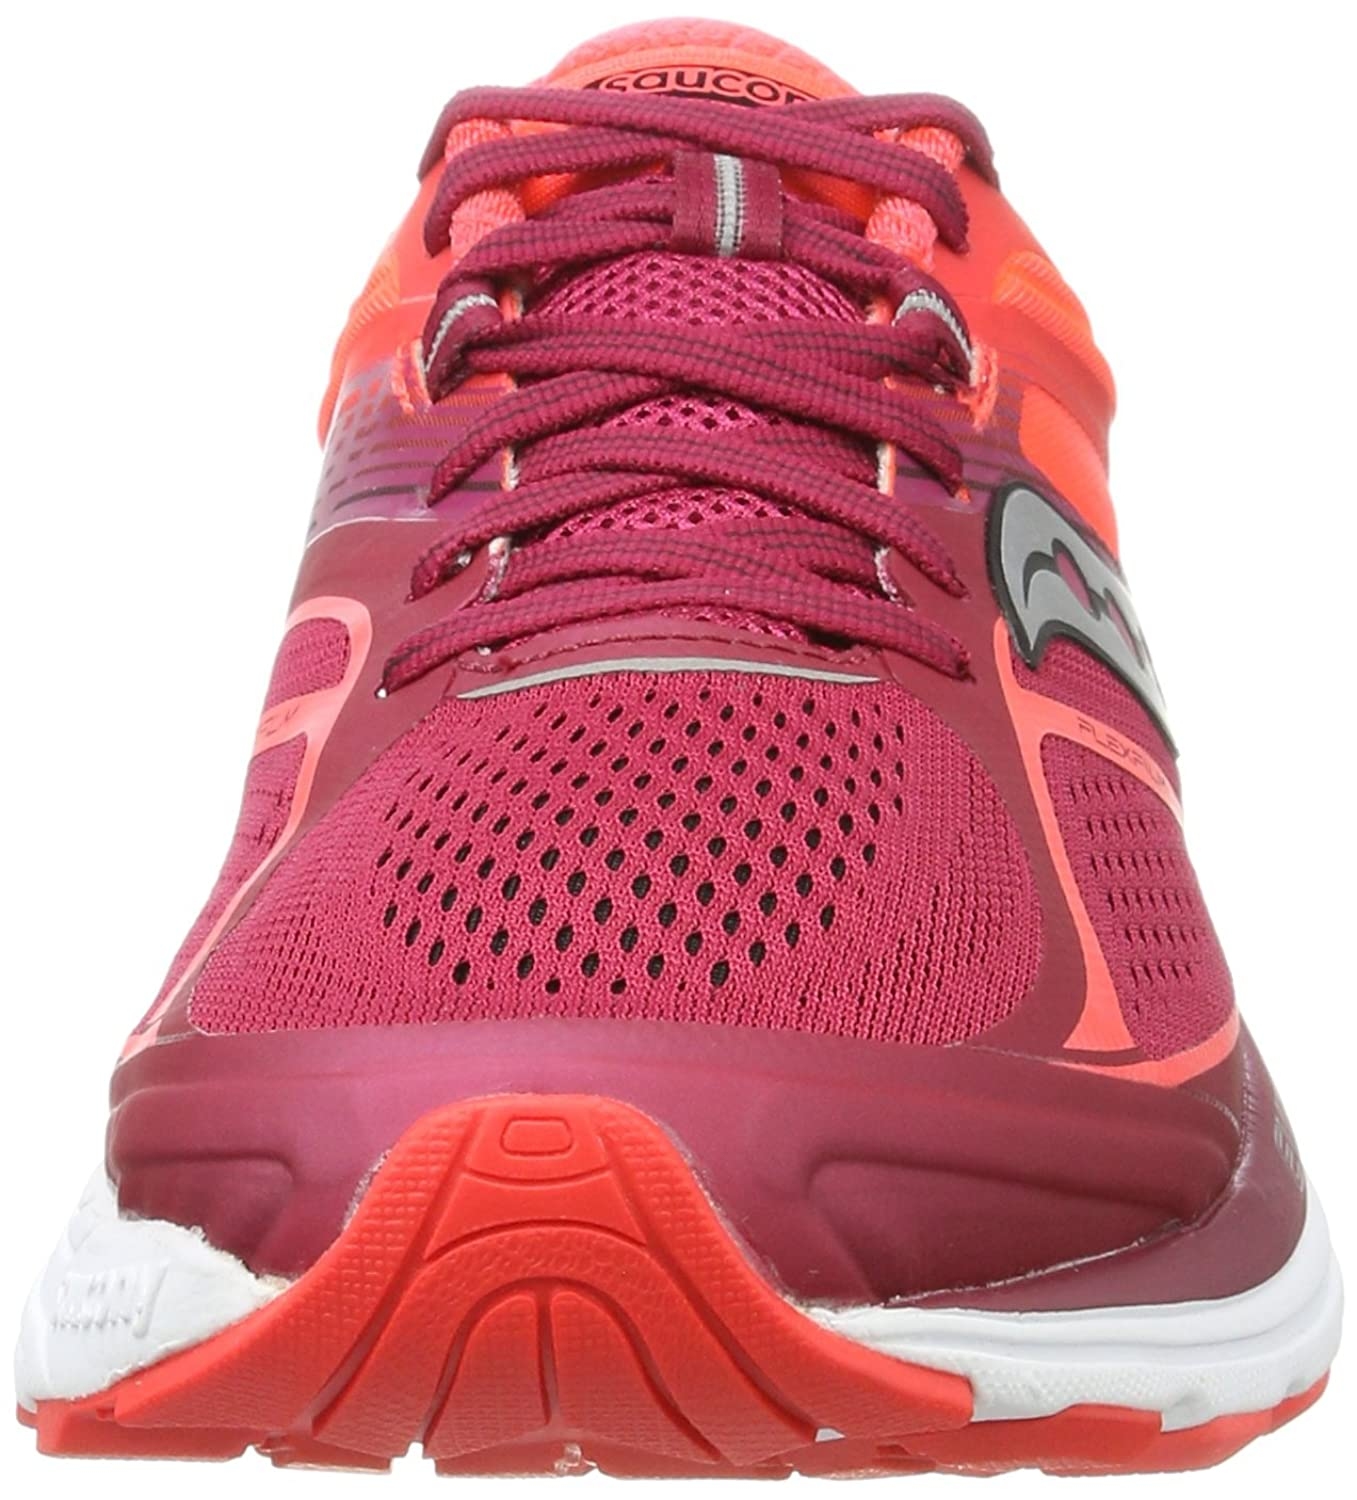 Saucony Guide 10 - Chaussures - Femme - Multicolore (Argent/Baie) - Taille: 38 hYxuVdp